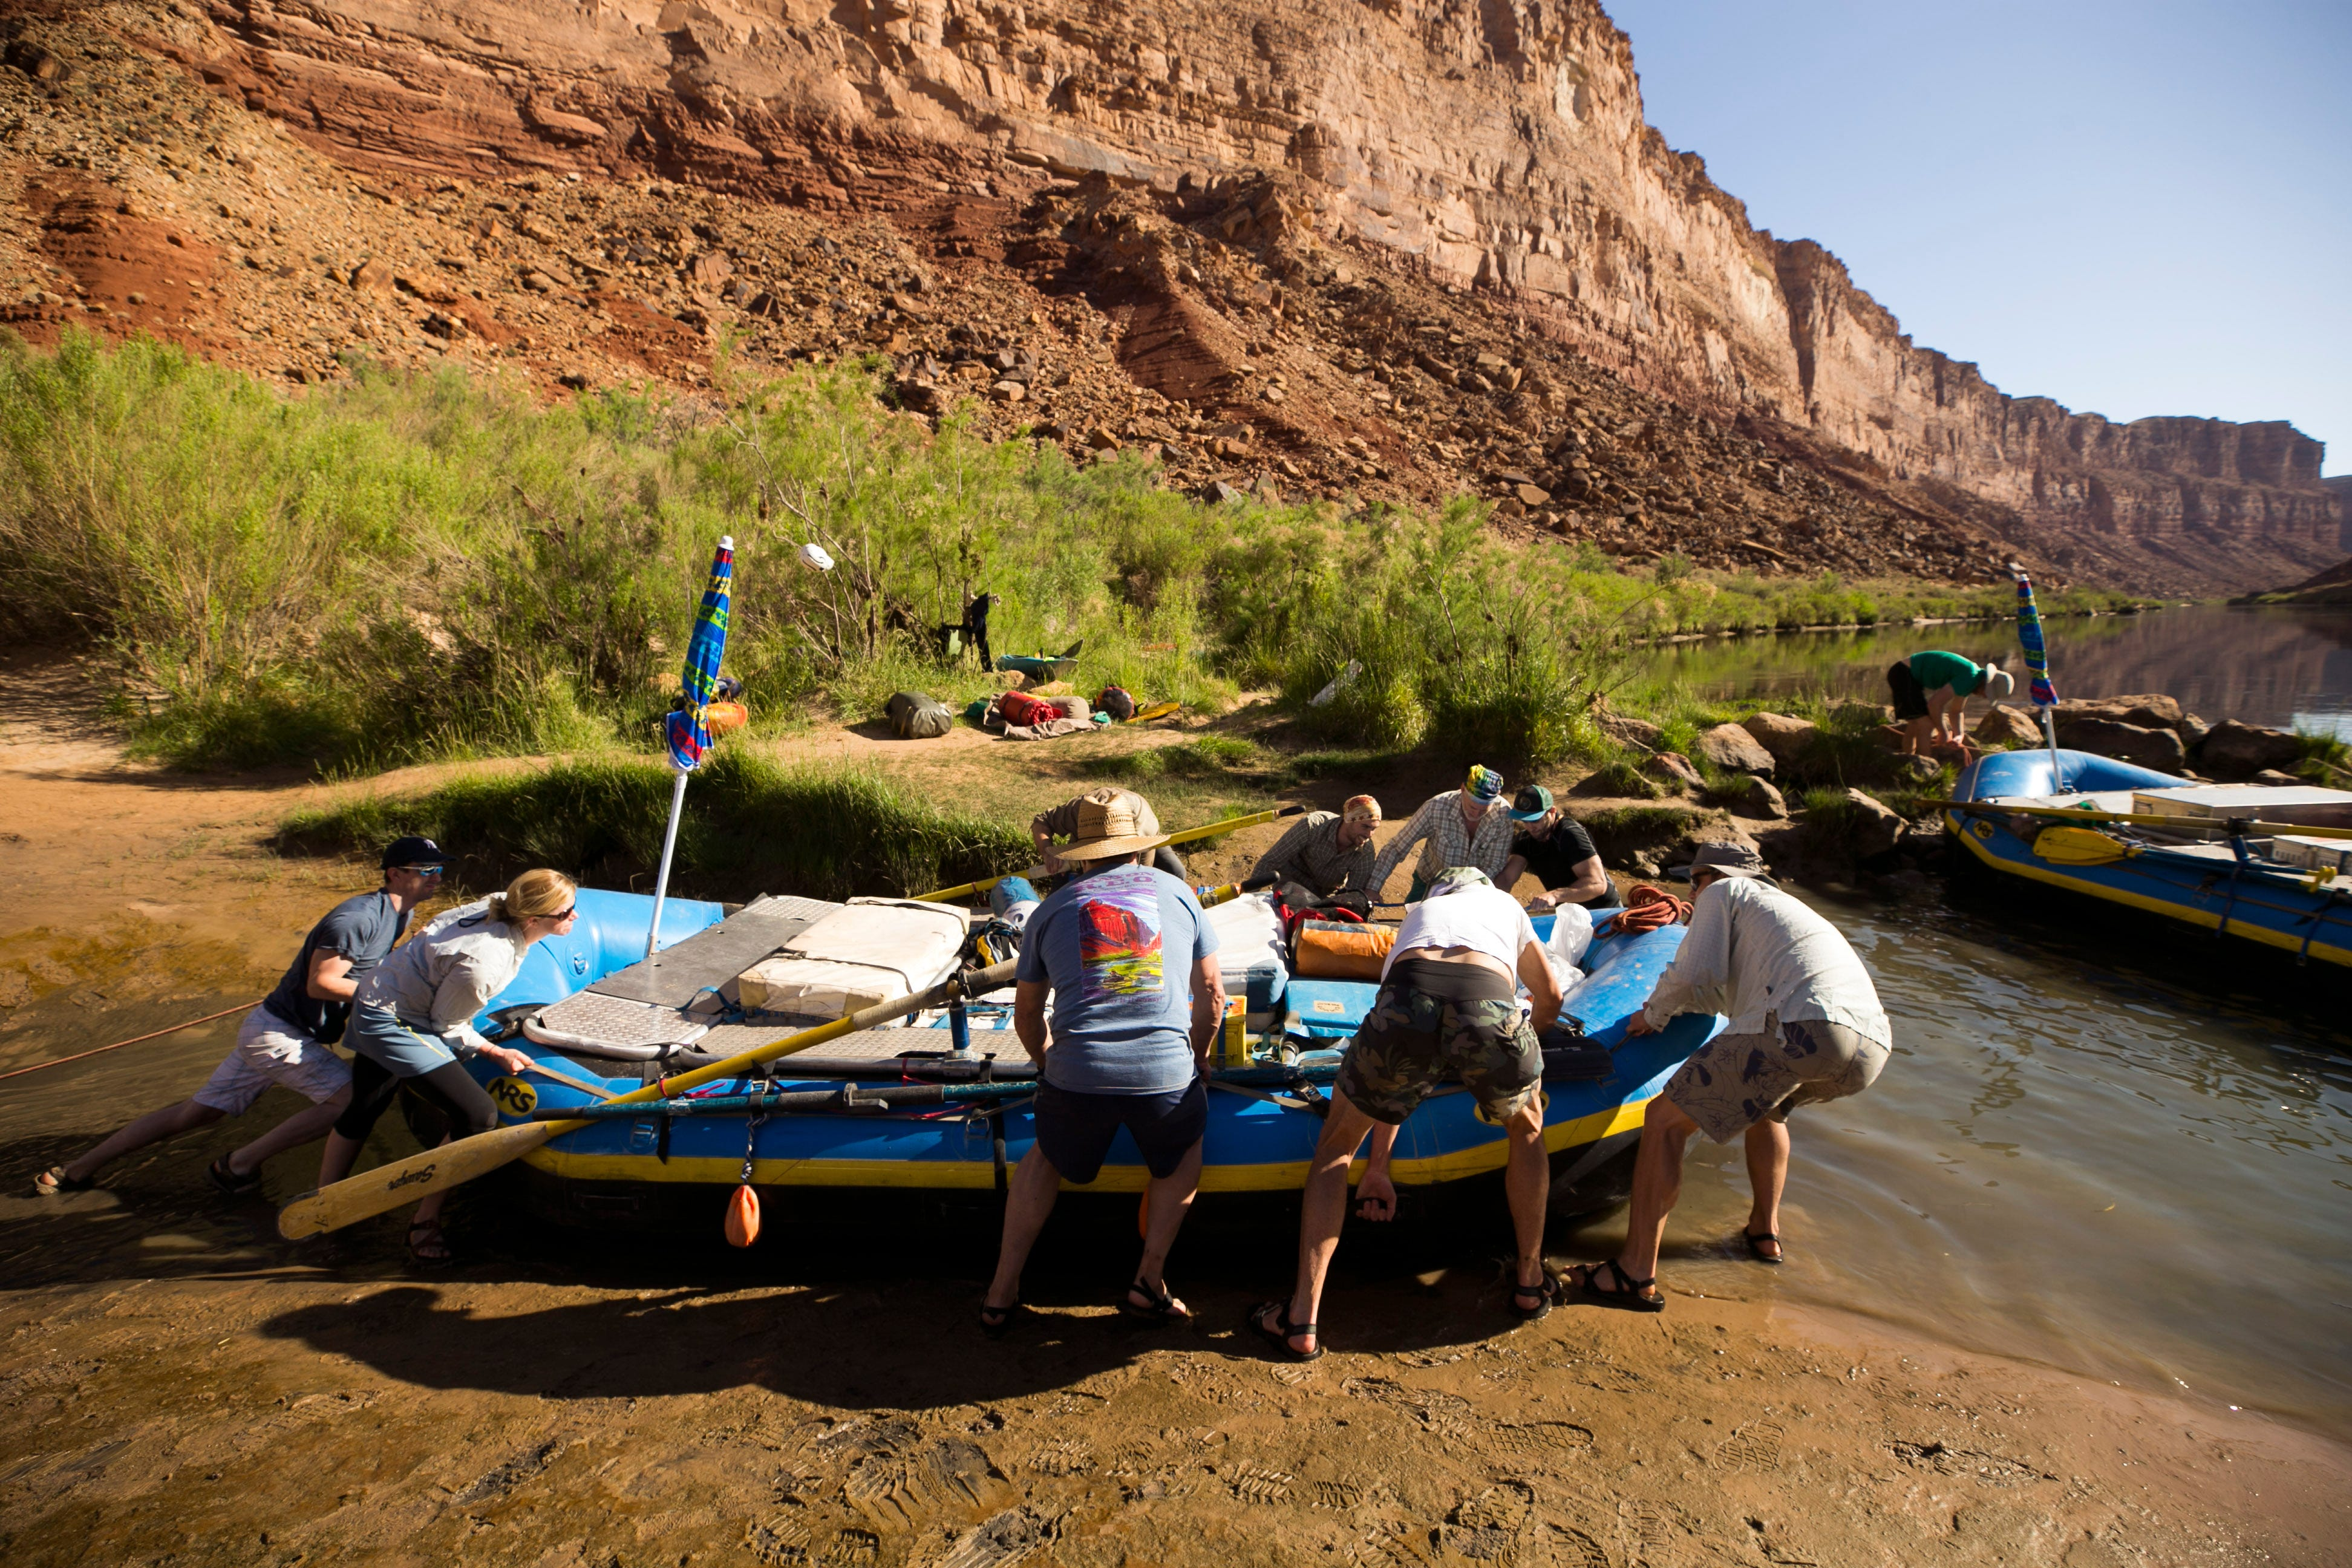 Members of a private river trip push a boat that got stuck in the mud after the Colorado River receded overnight at the campsite above Soap Creek rapid in Grand Canyon National Park.